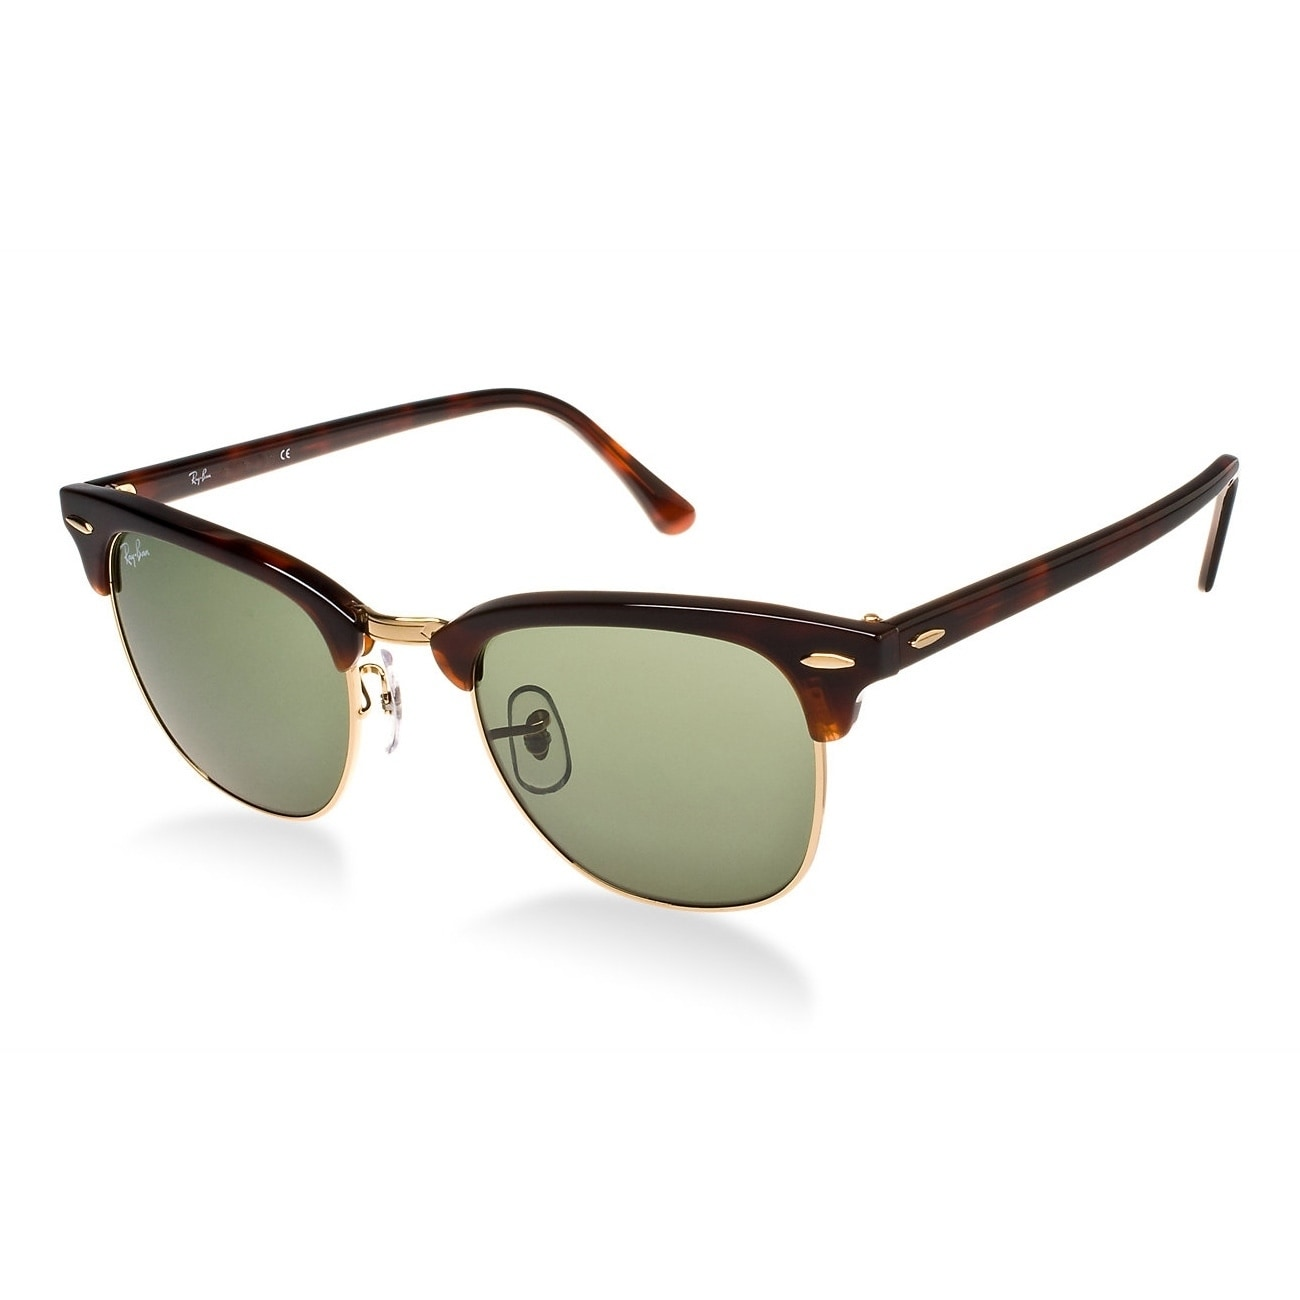 ac4c8fdc87a Ray-Ban Men s Sunglasses